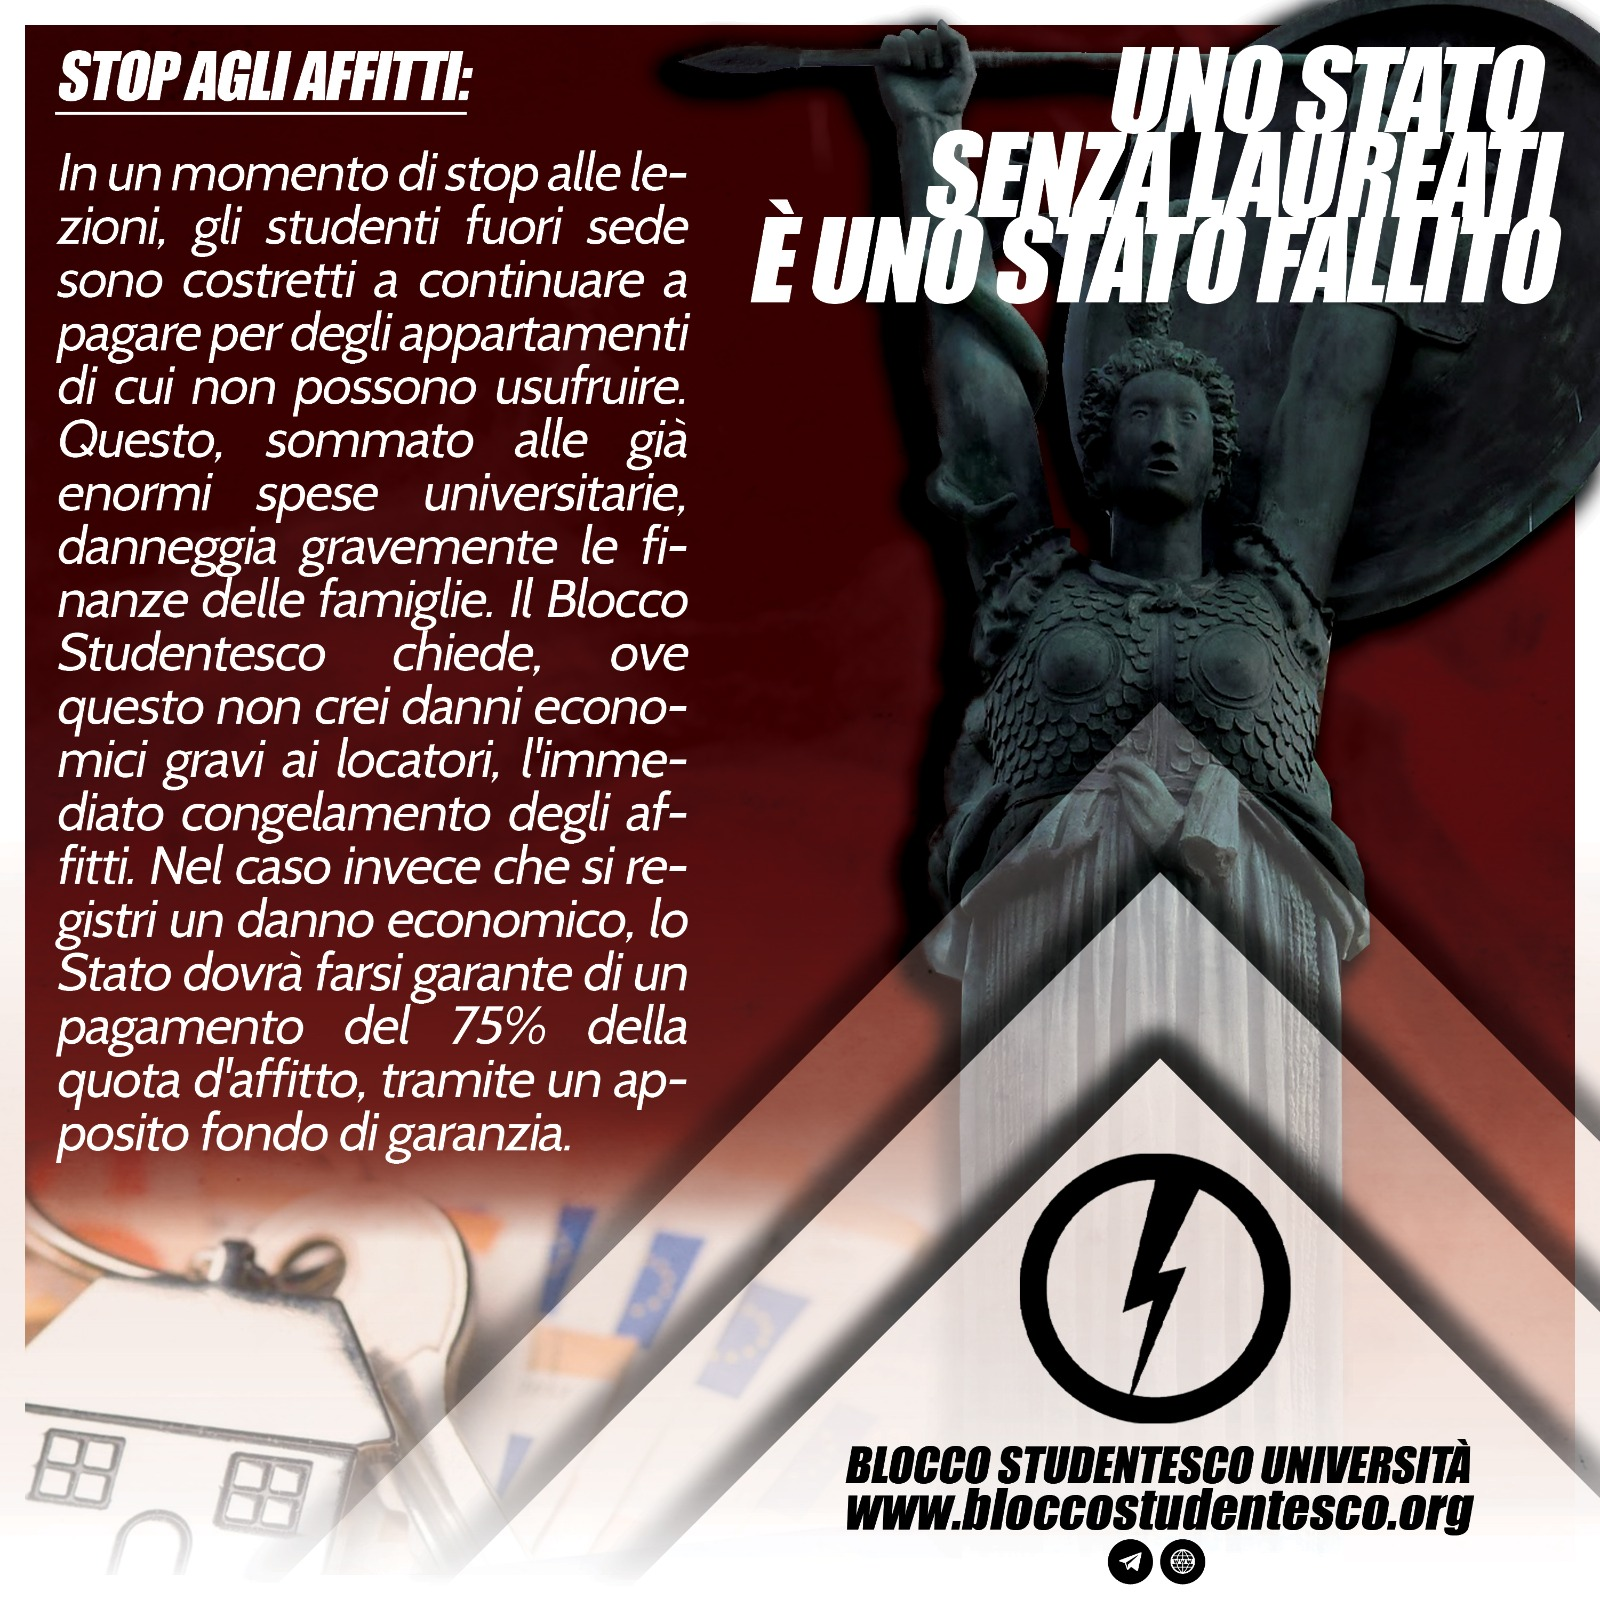 proposta stop affitti universitari blocco studentesco università covid 19